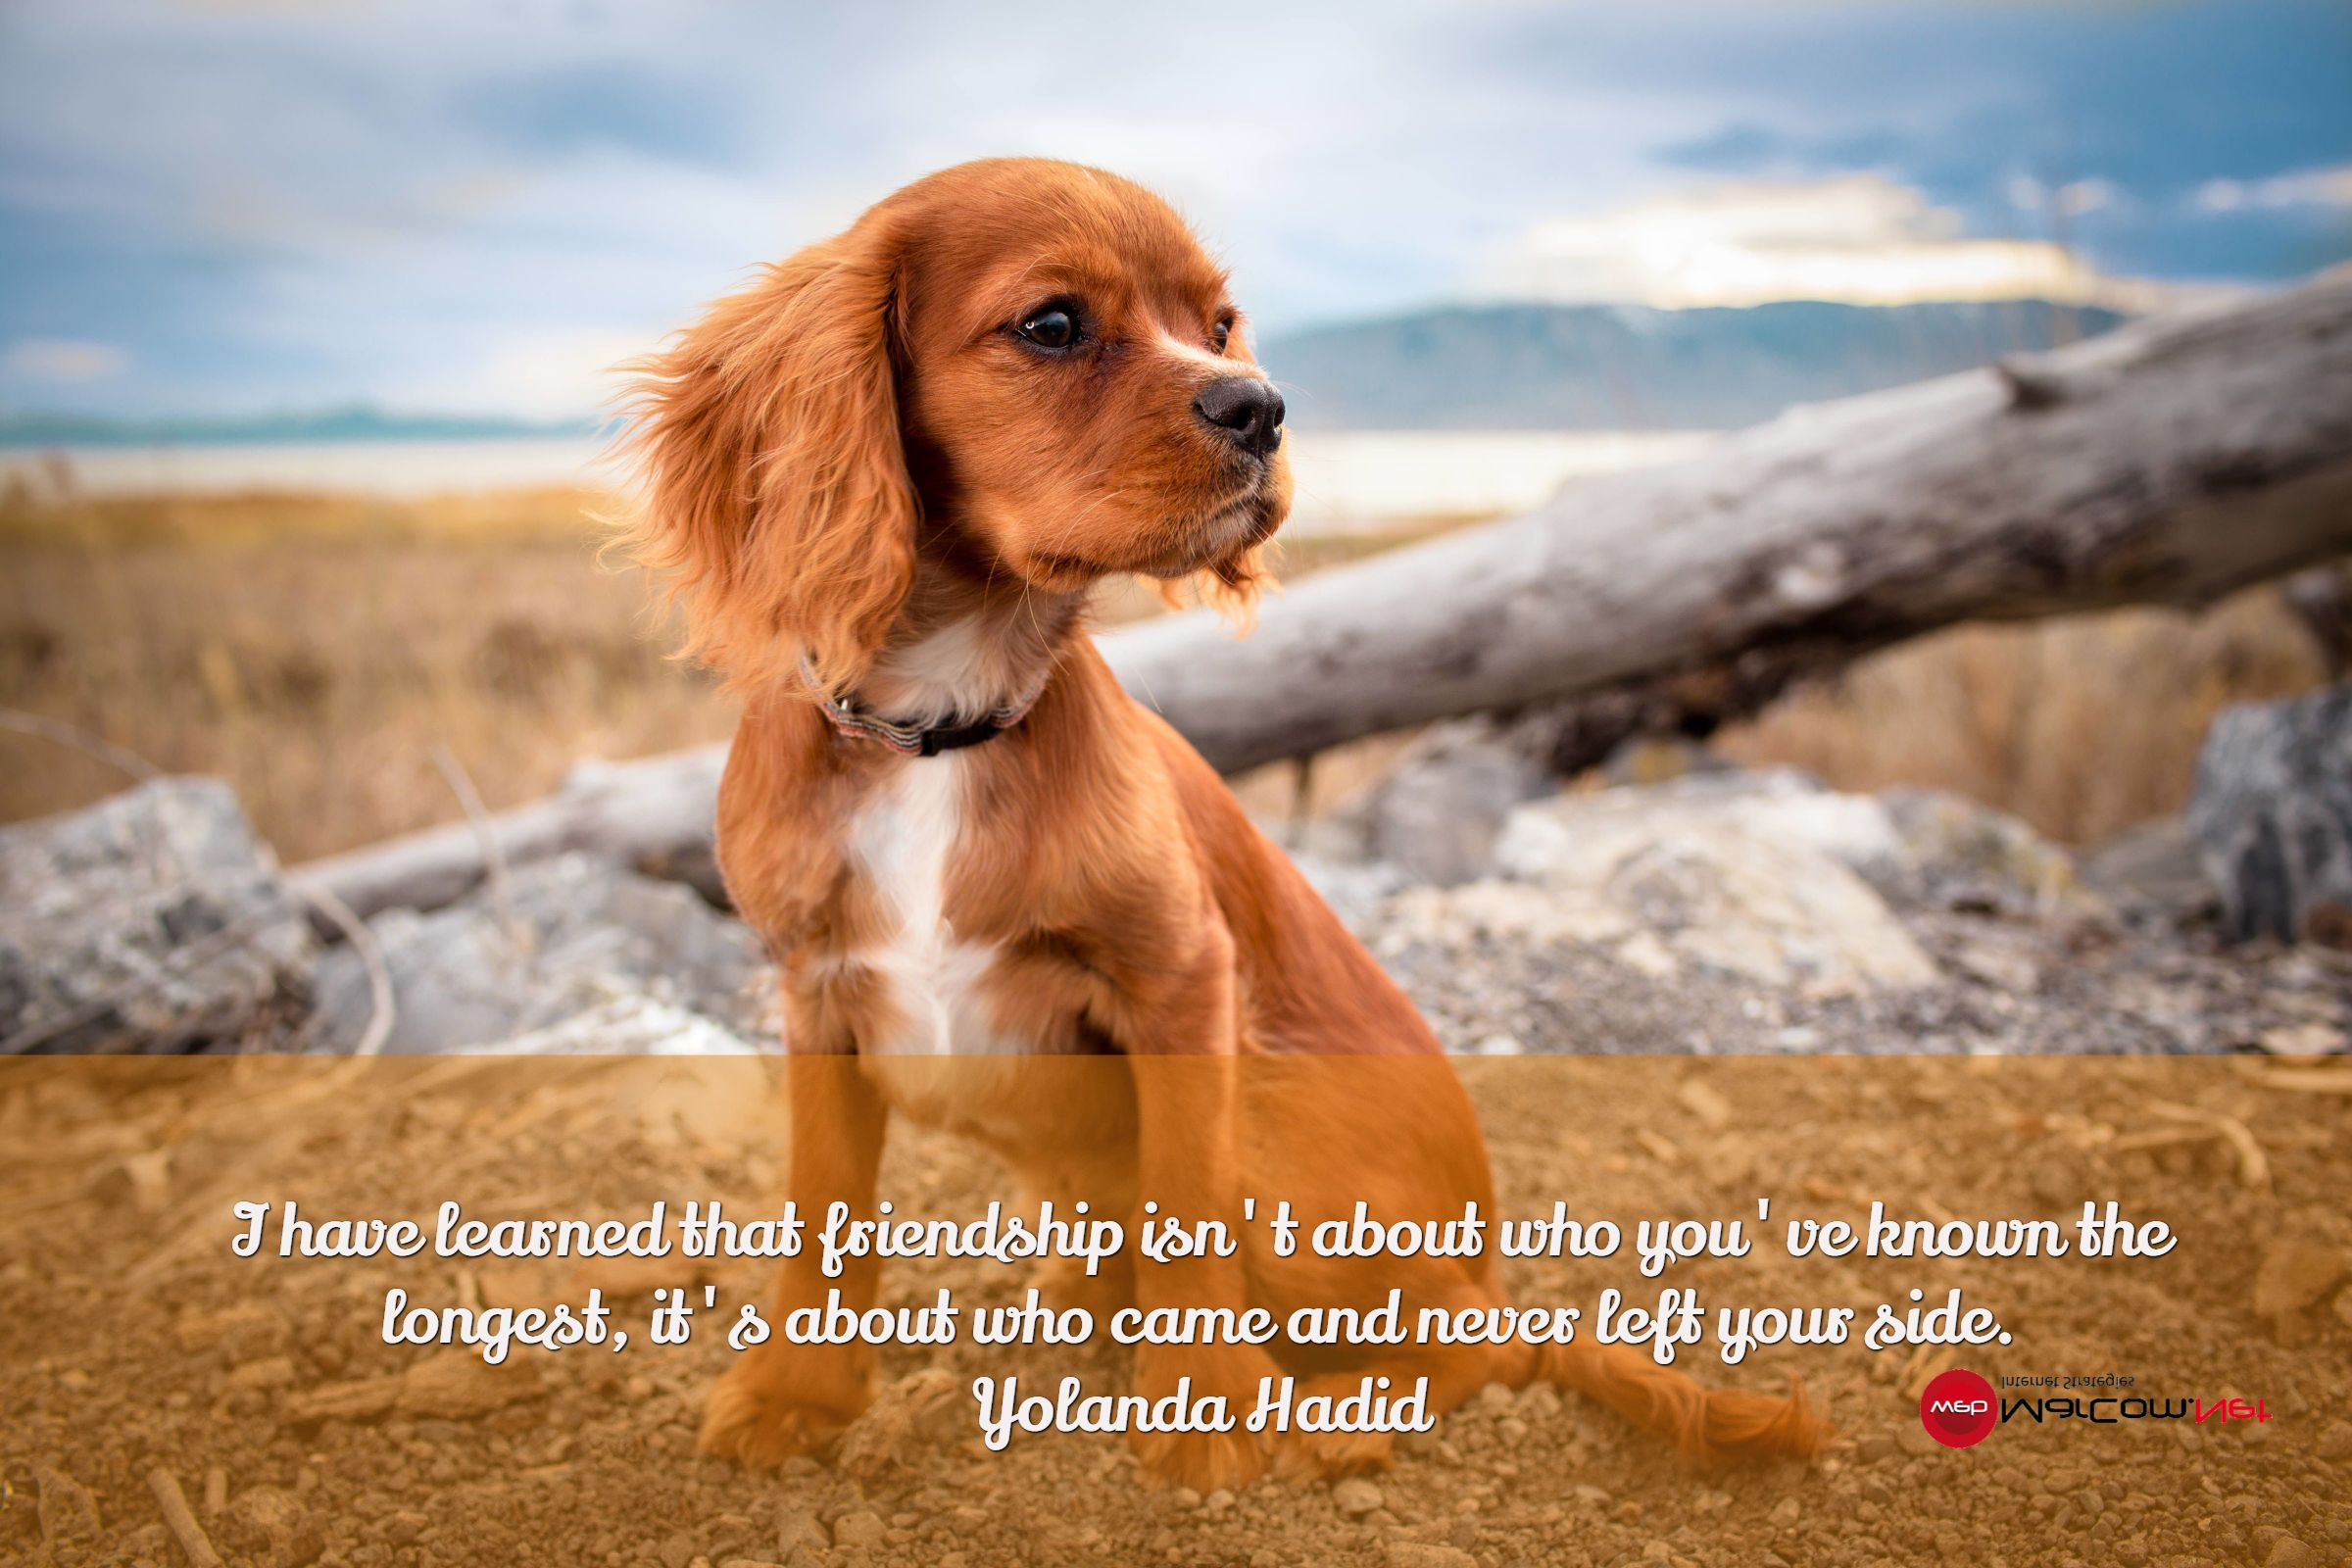 I have learned that friendship isn't about who you've